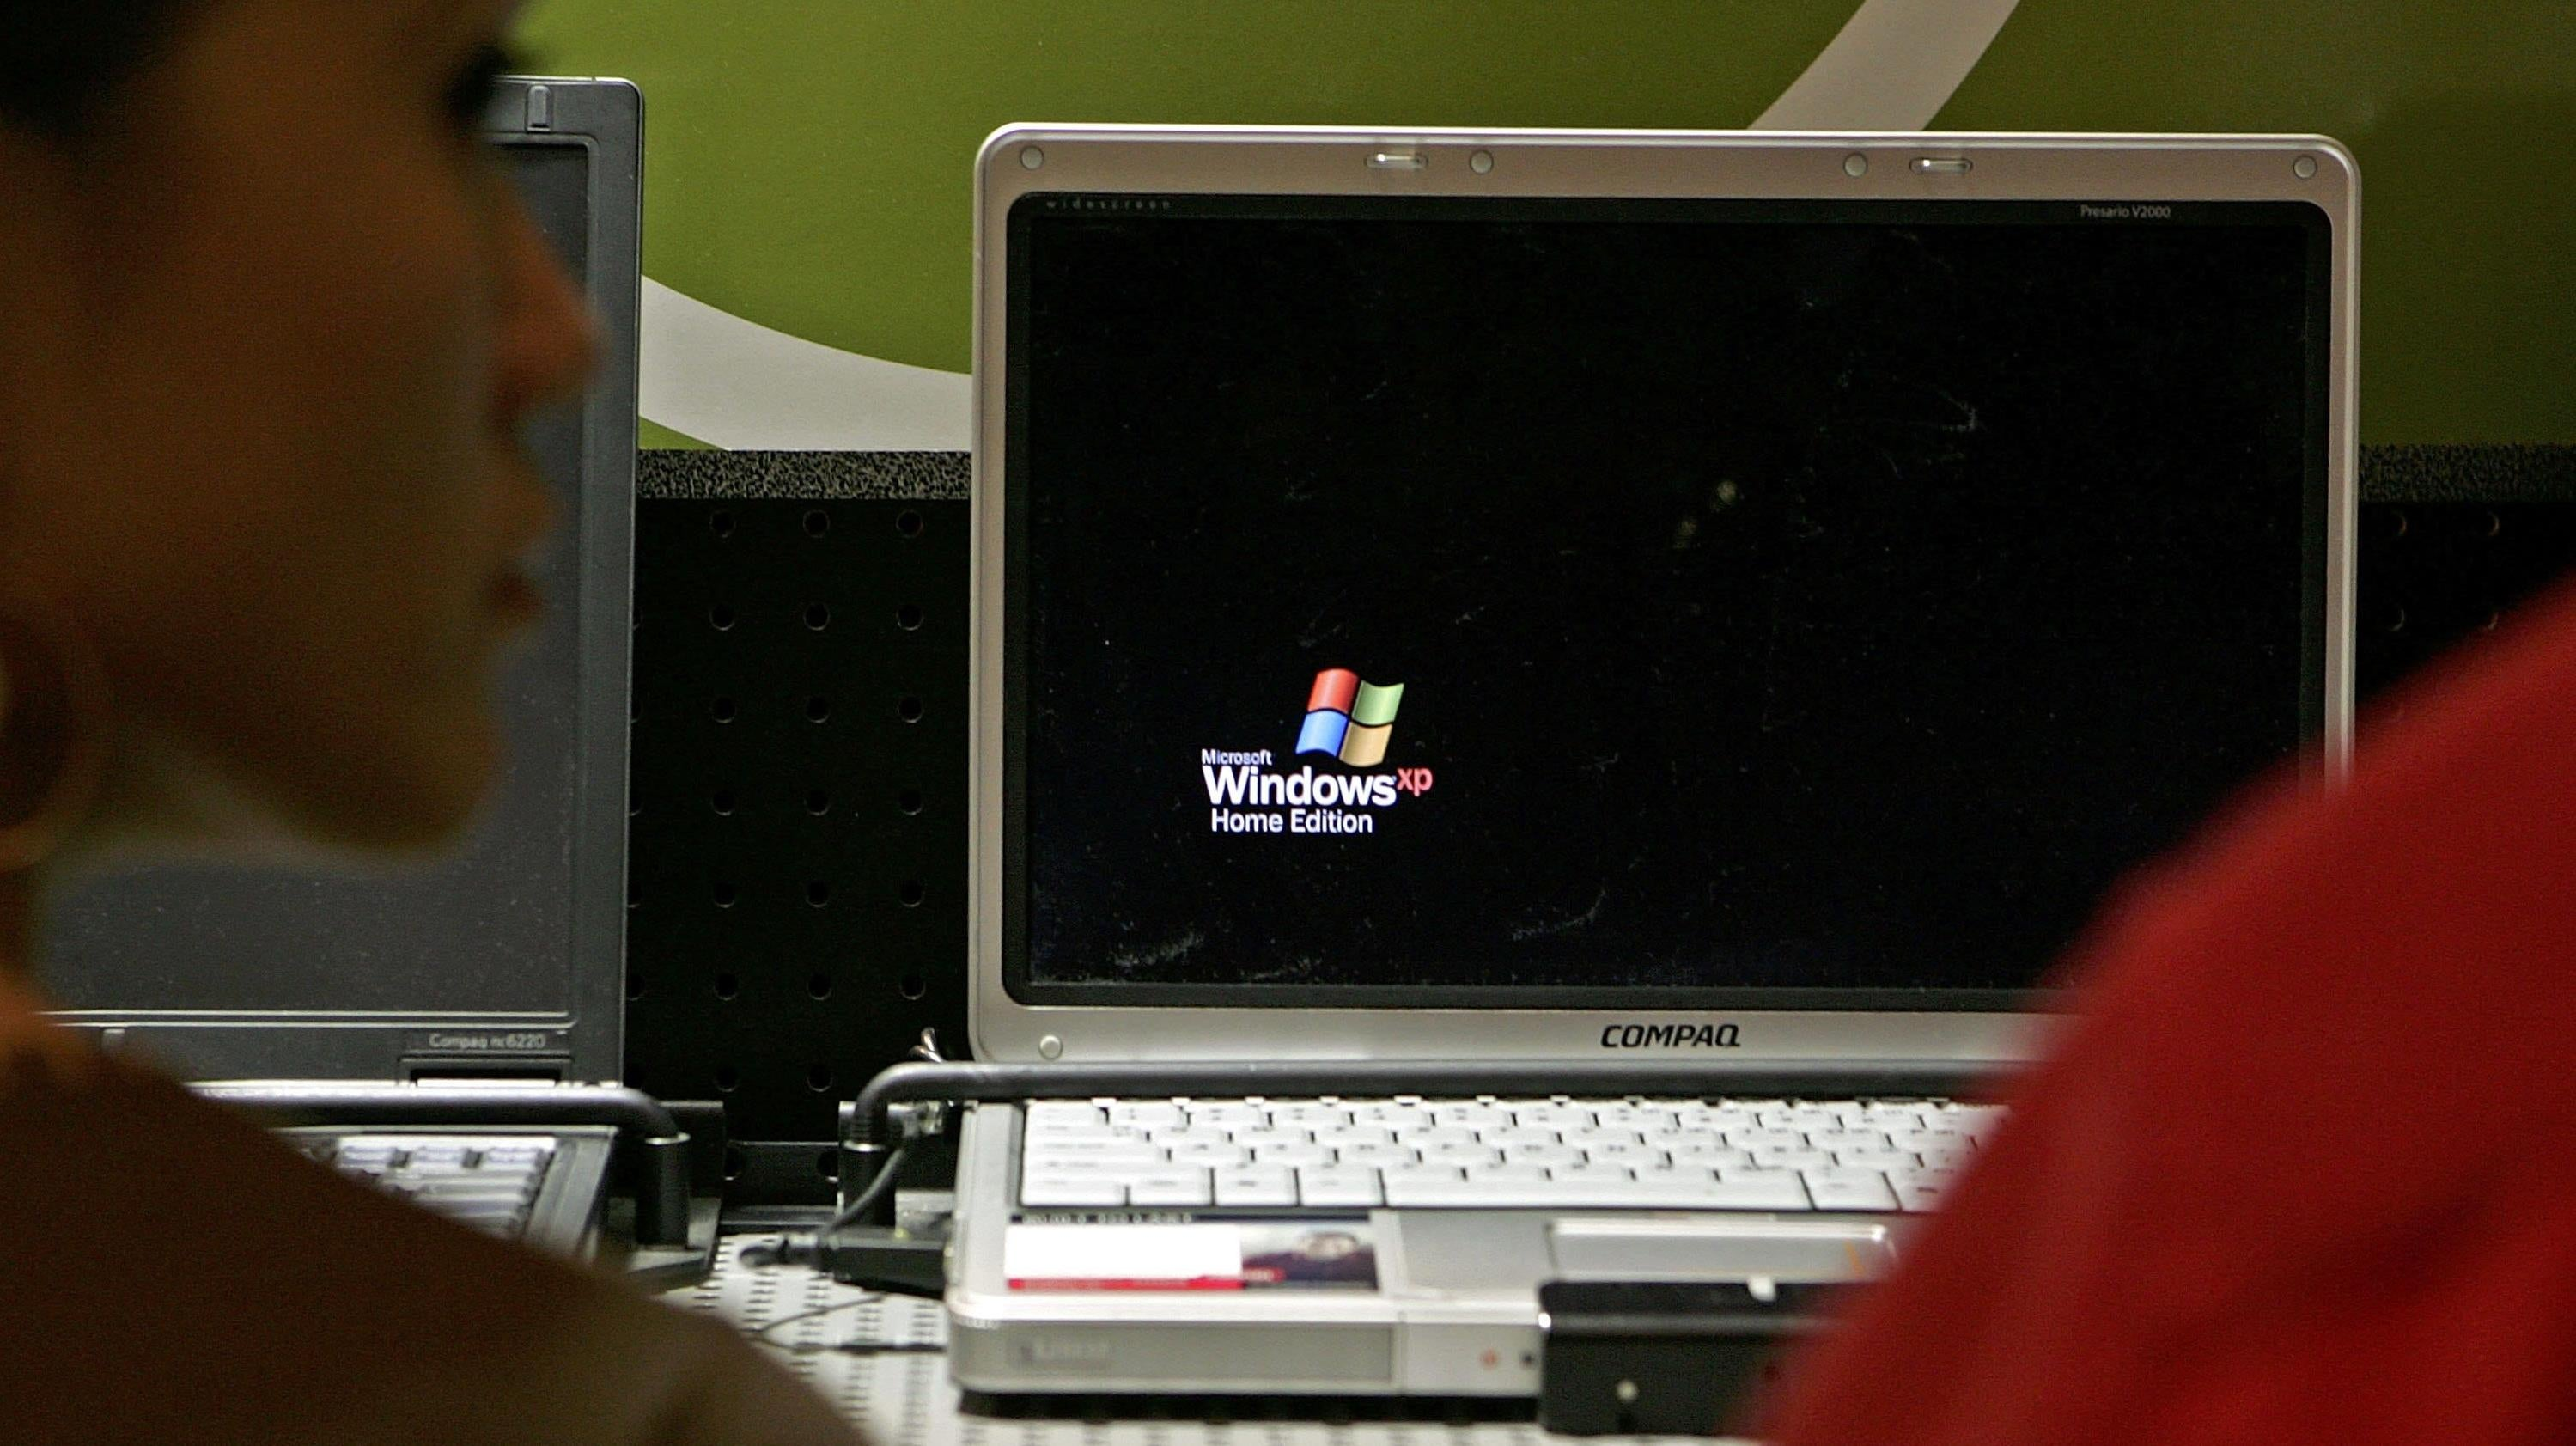 You Need To Patch Your Older Windows PCs Right Now To Fix A Serious Flaw